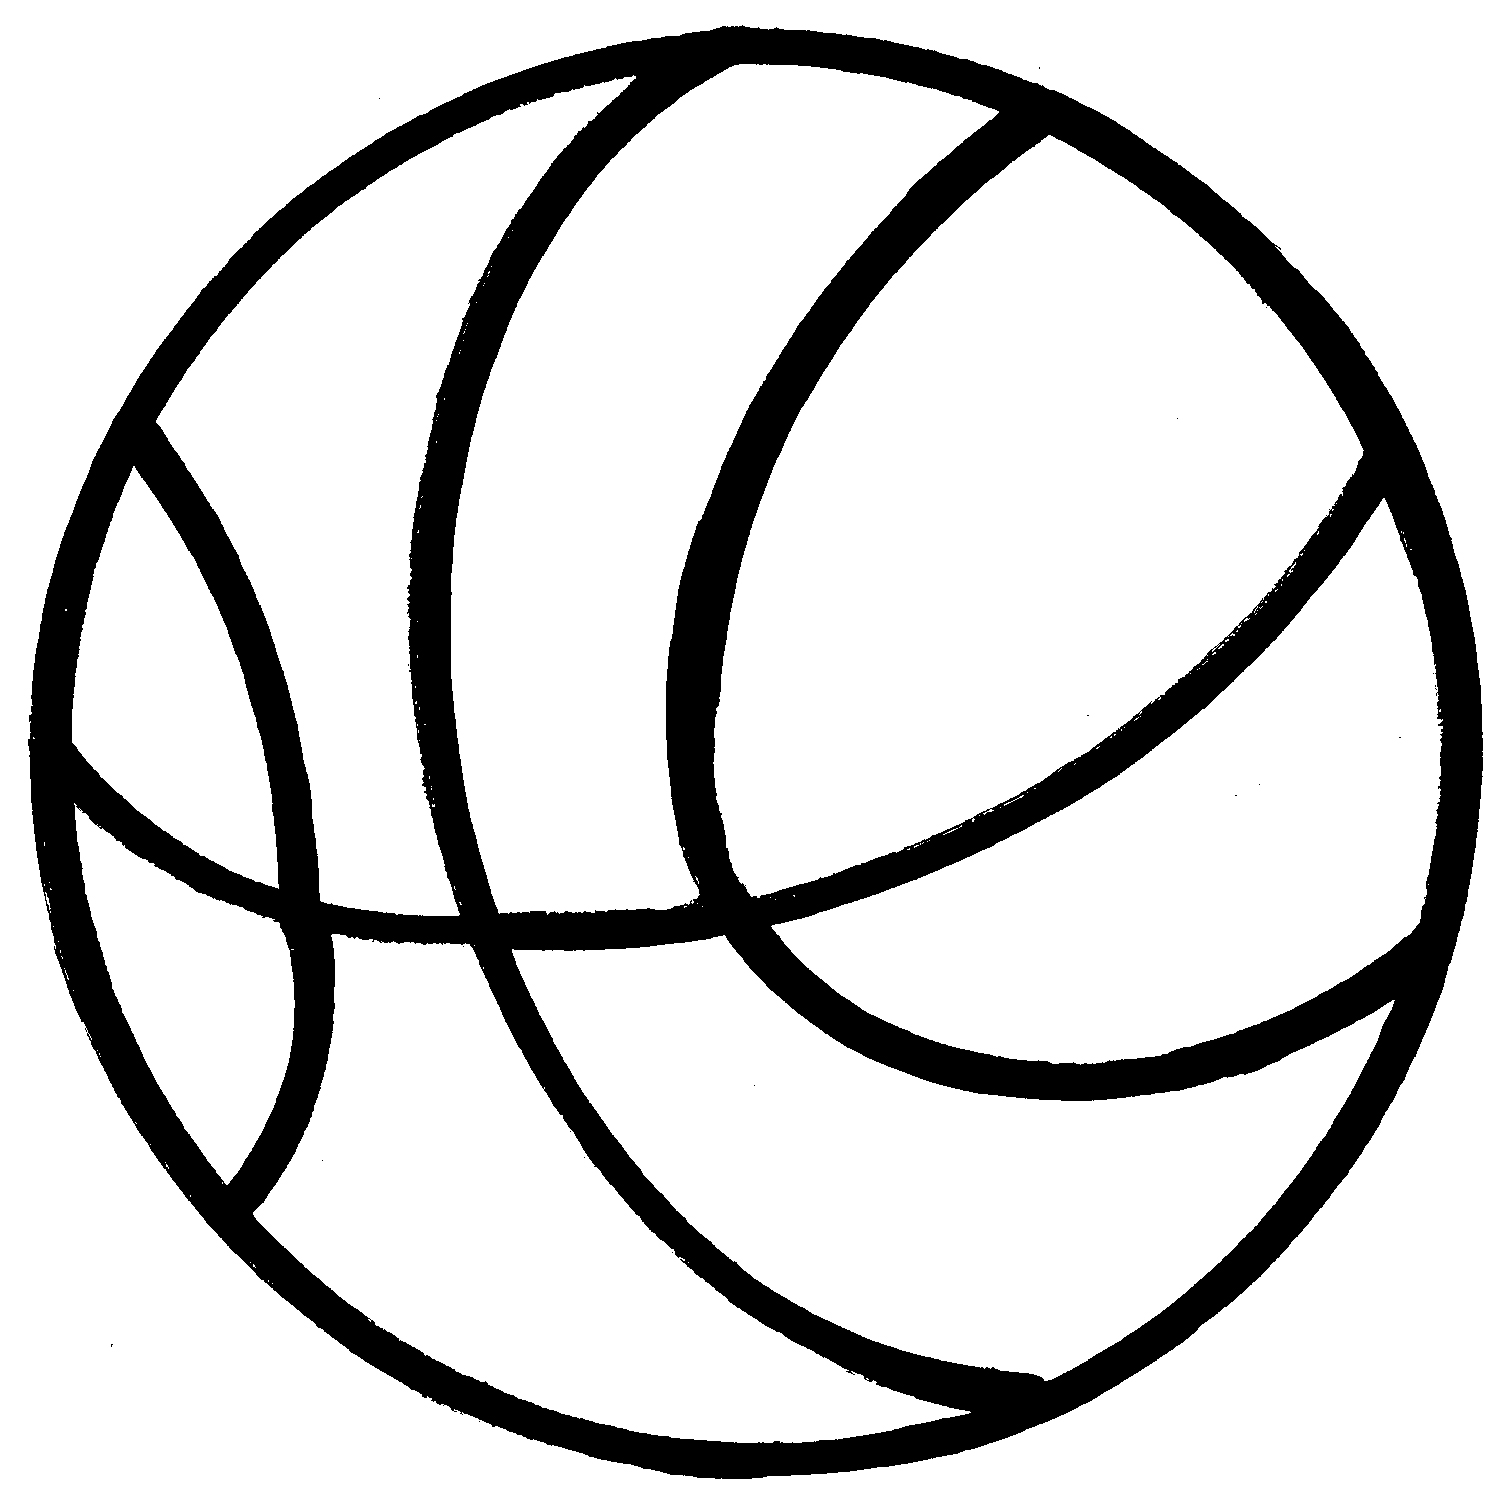 Basketball jpg clipart png library stock Basketball Clipart - Clipart Kid png library stock